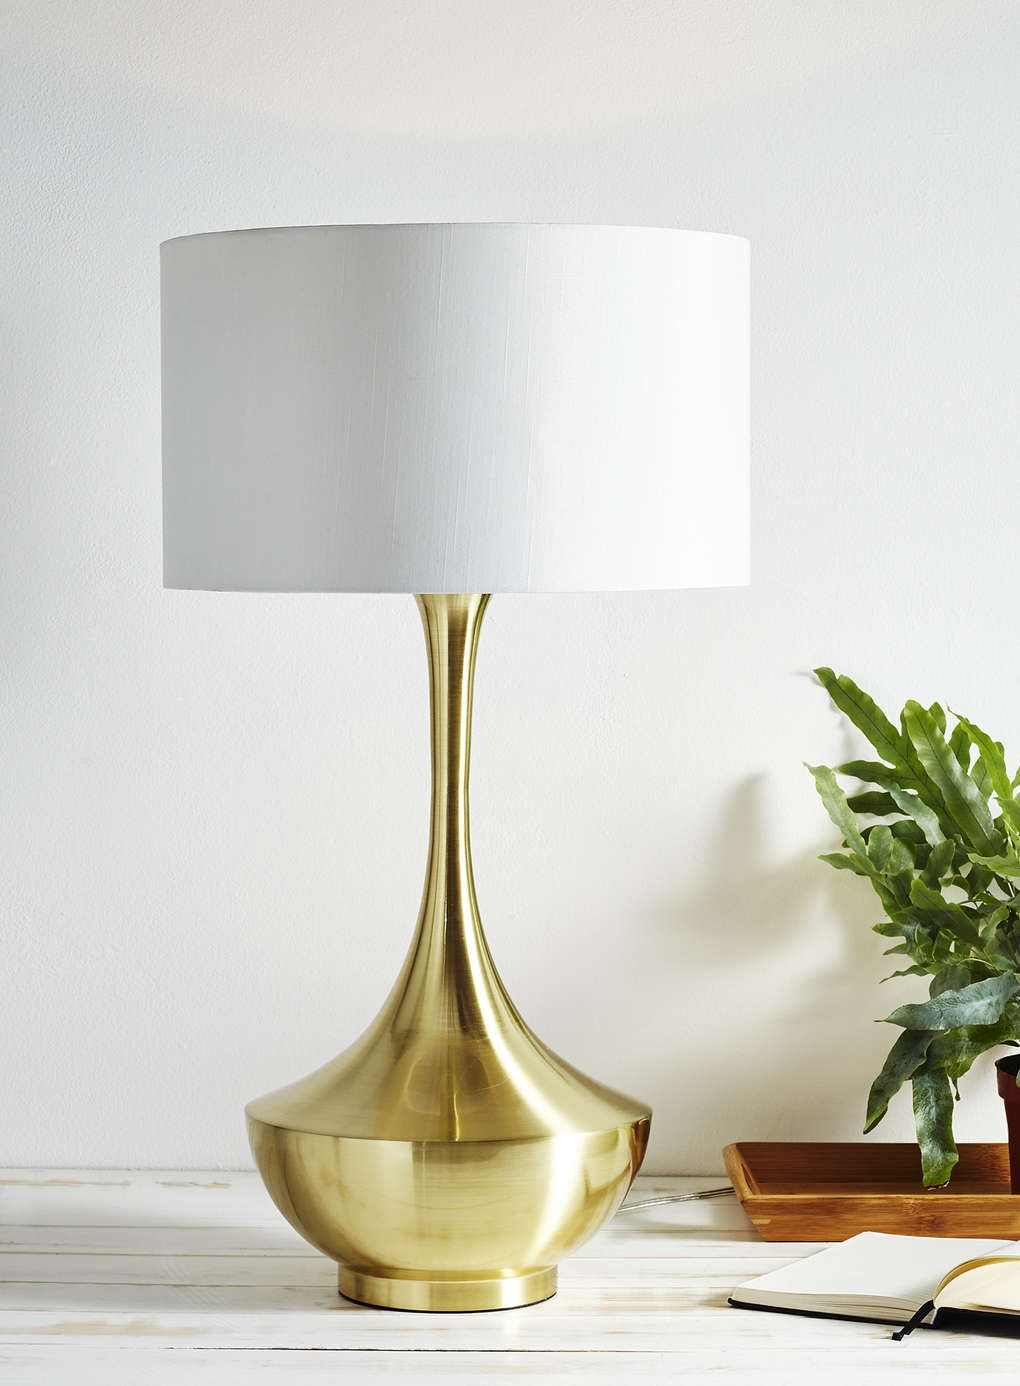 Brass Brock Table Lamp Bhs Lamp Table Lamp Interior Design